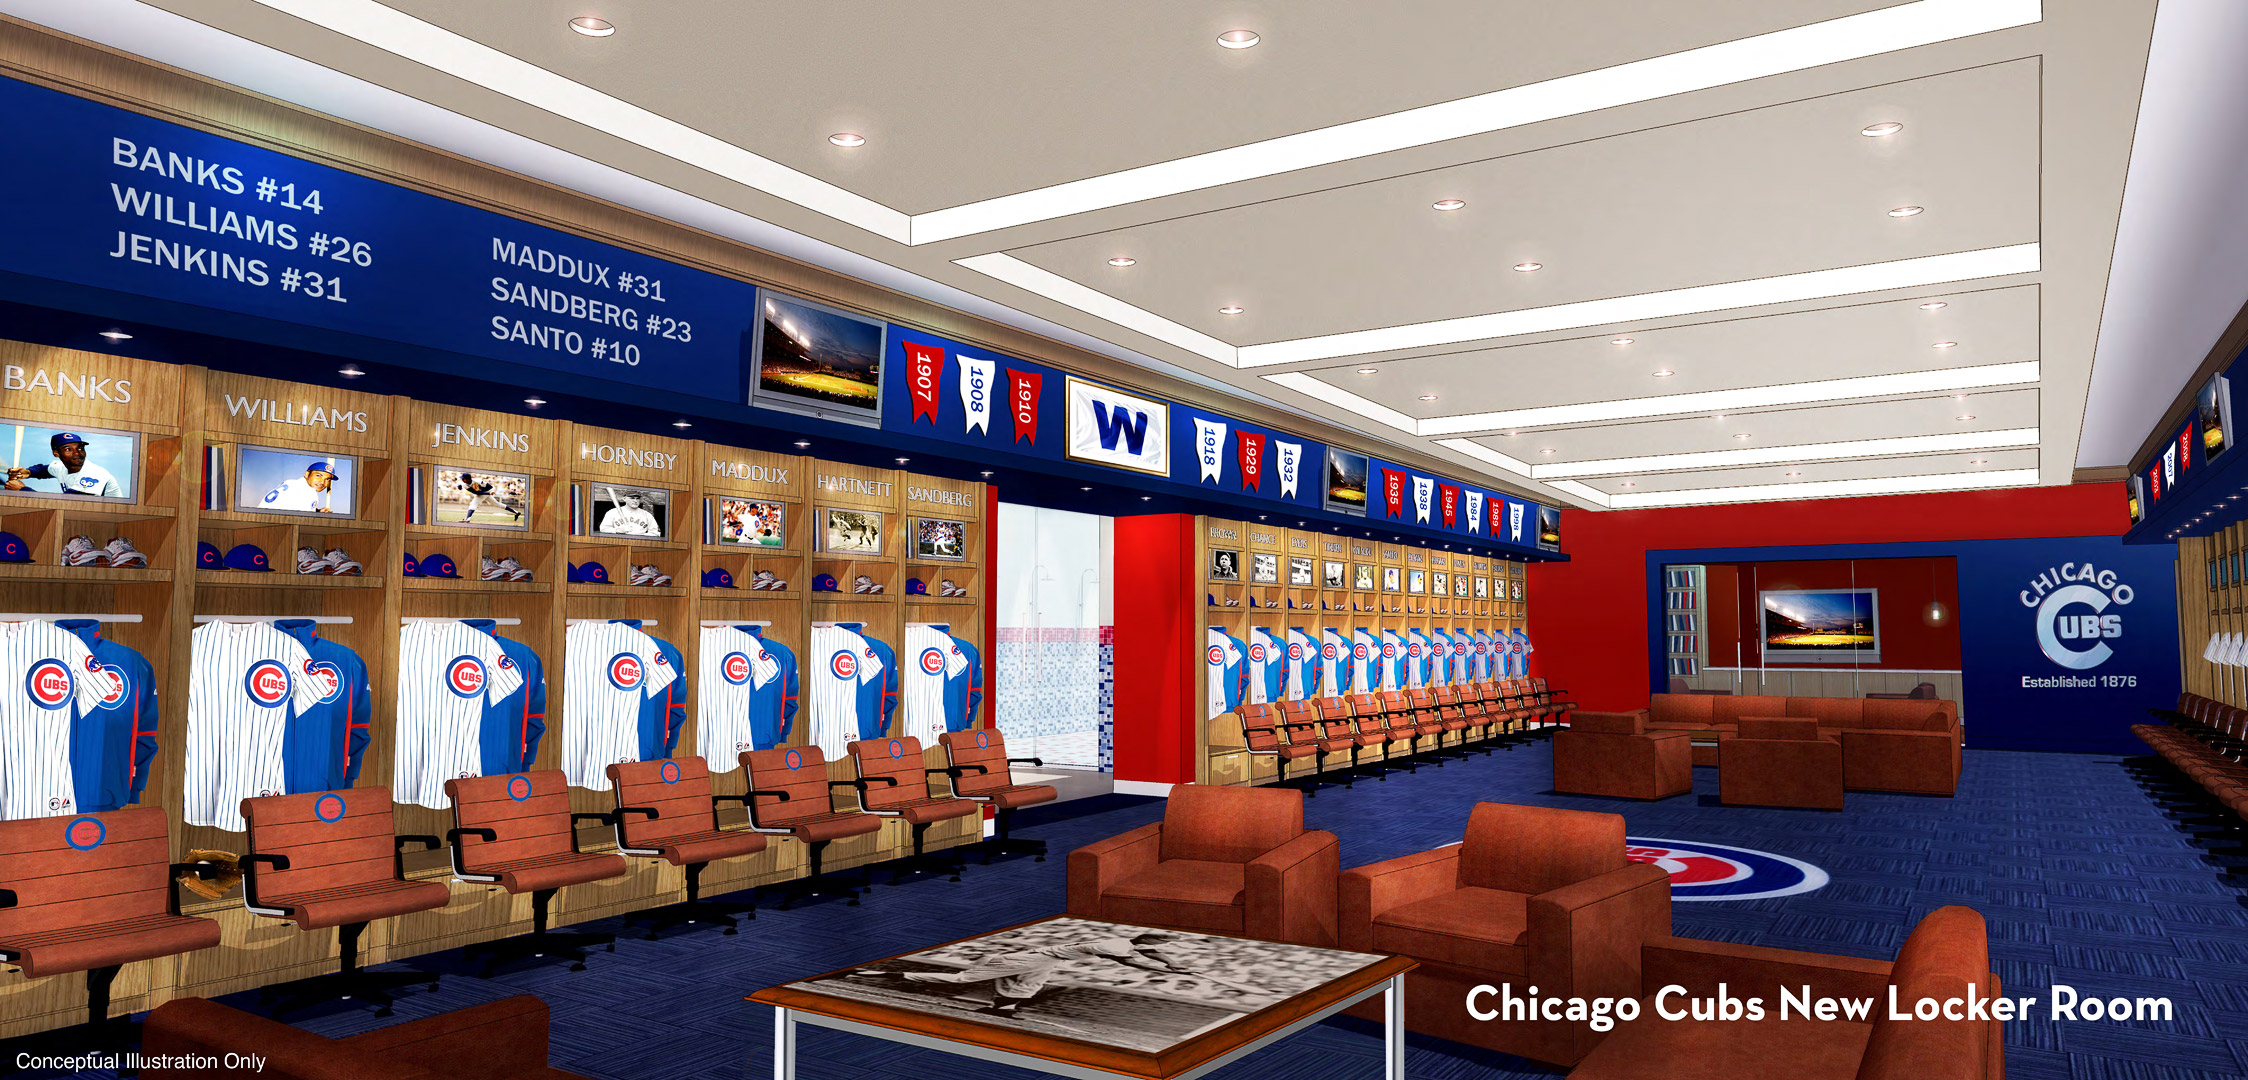 Wrigley Renderings - Cubs locker room